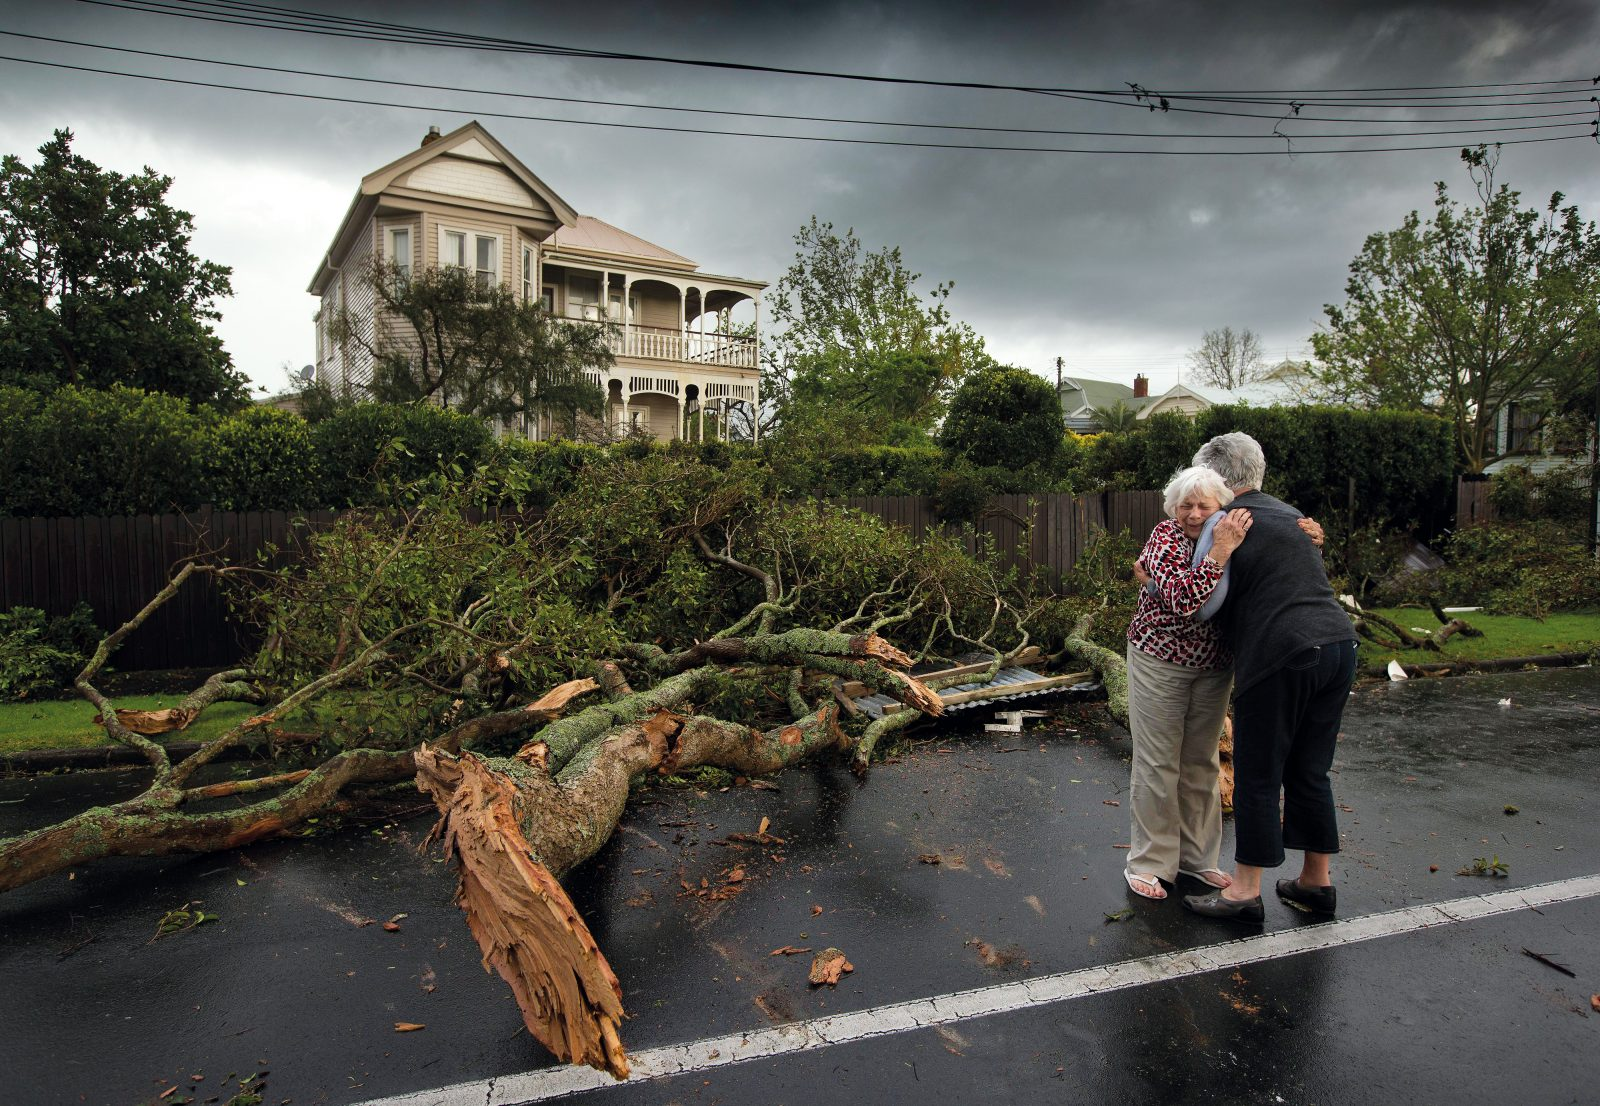 Devonport resident Shirley Wilma is comforted by a friend after a tornado ripped through the Auckland suburb on the evening of October 8, 2013. Brett Phibbs arrived on the scene shortly after the wind gusts struck and photographed the embrace of friends among uprooted trees and fallen power lines. A photographer for the New Zealand Herald, he says the most important thing in covering natural disasters is arriving quickly enough to capture the human reaction.